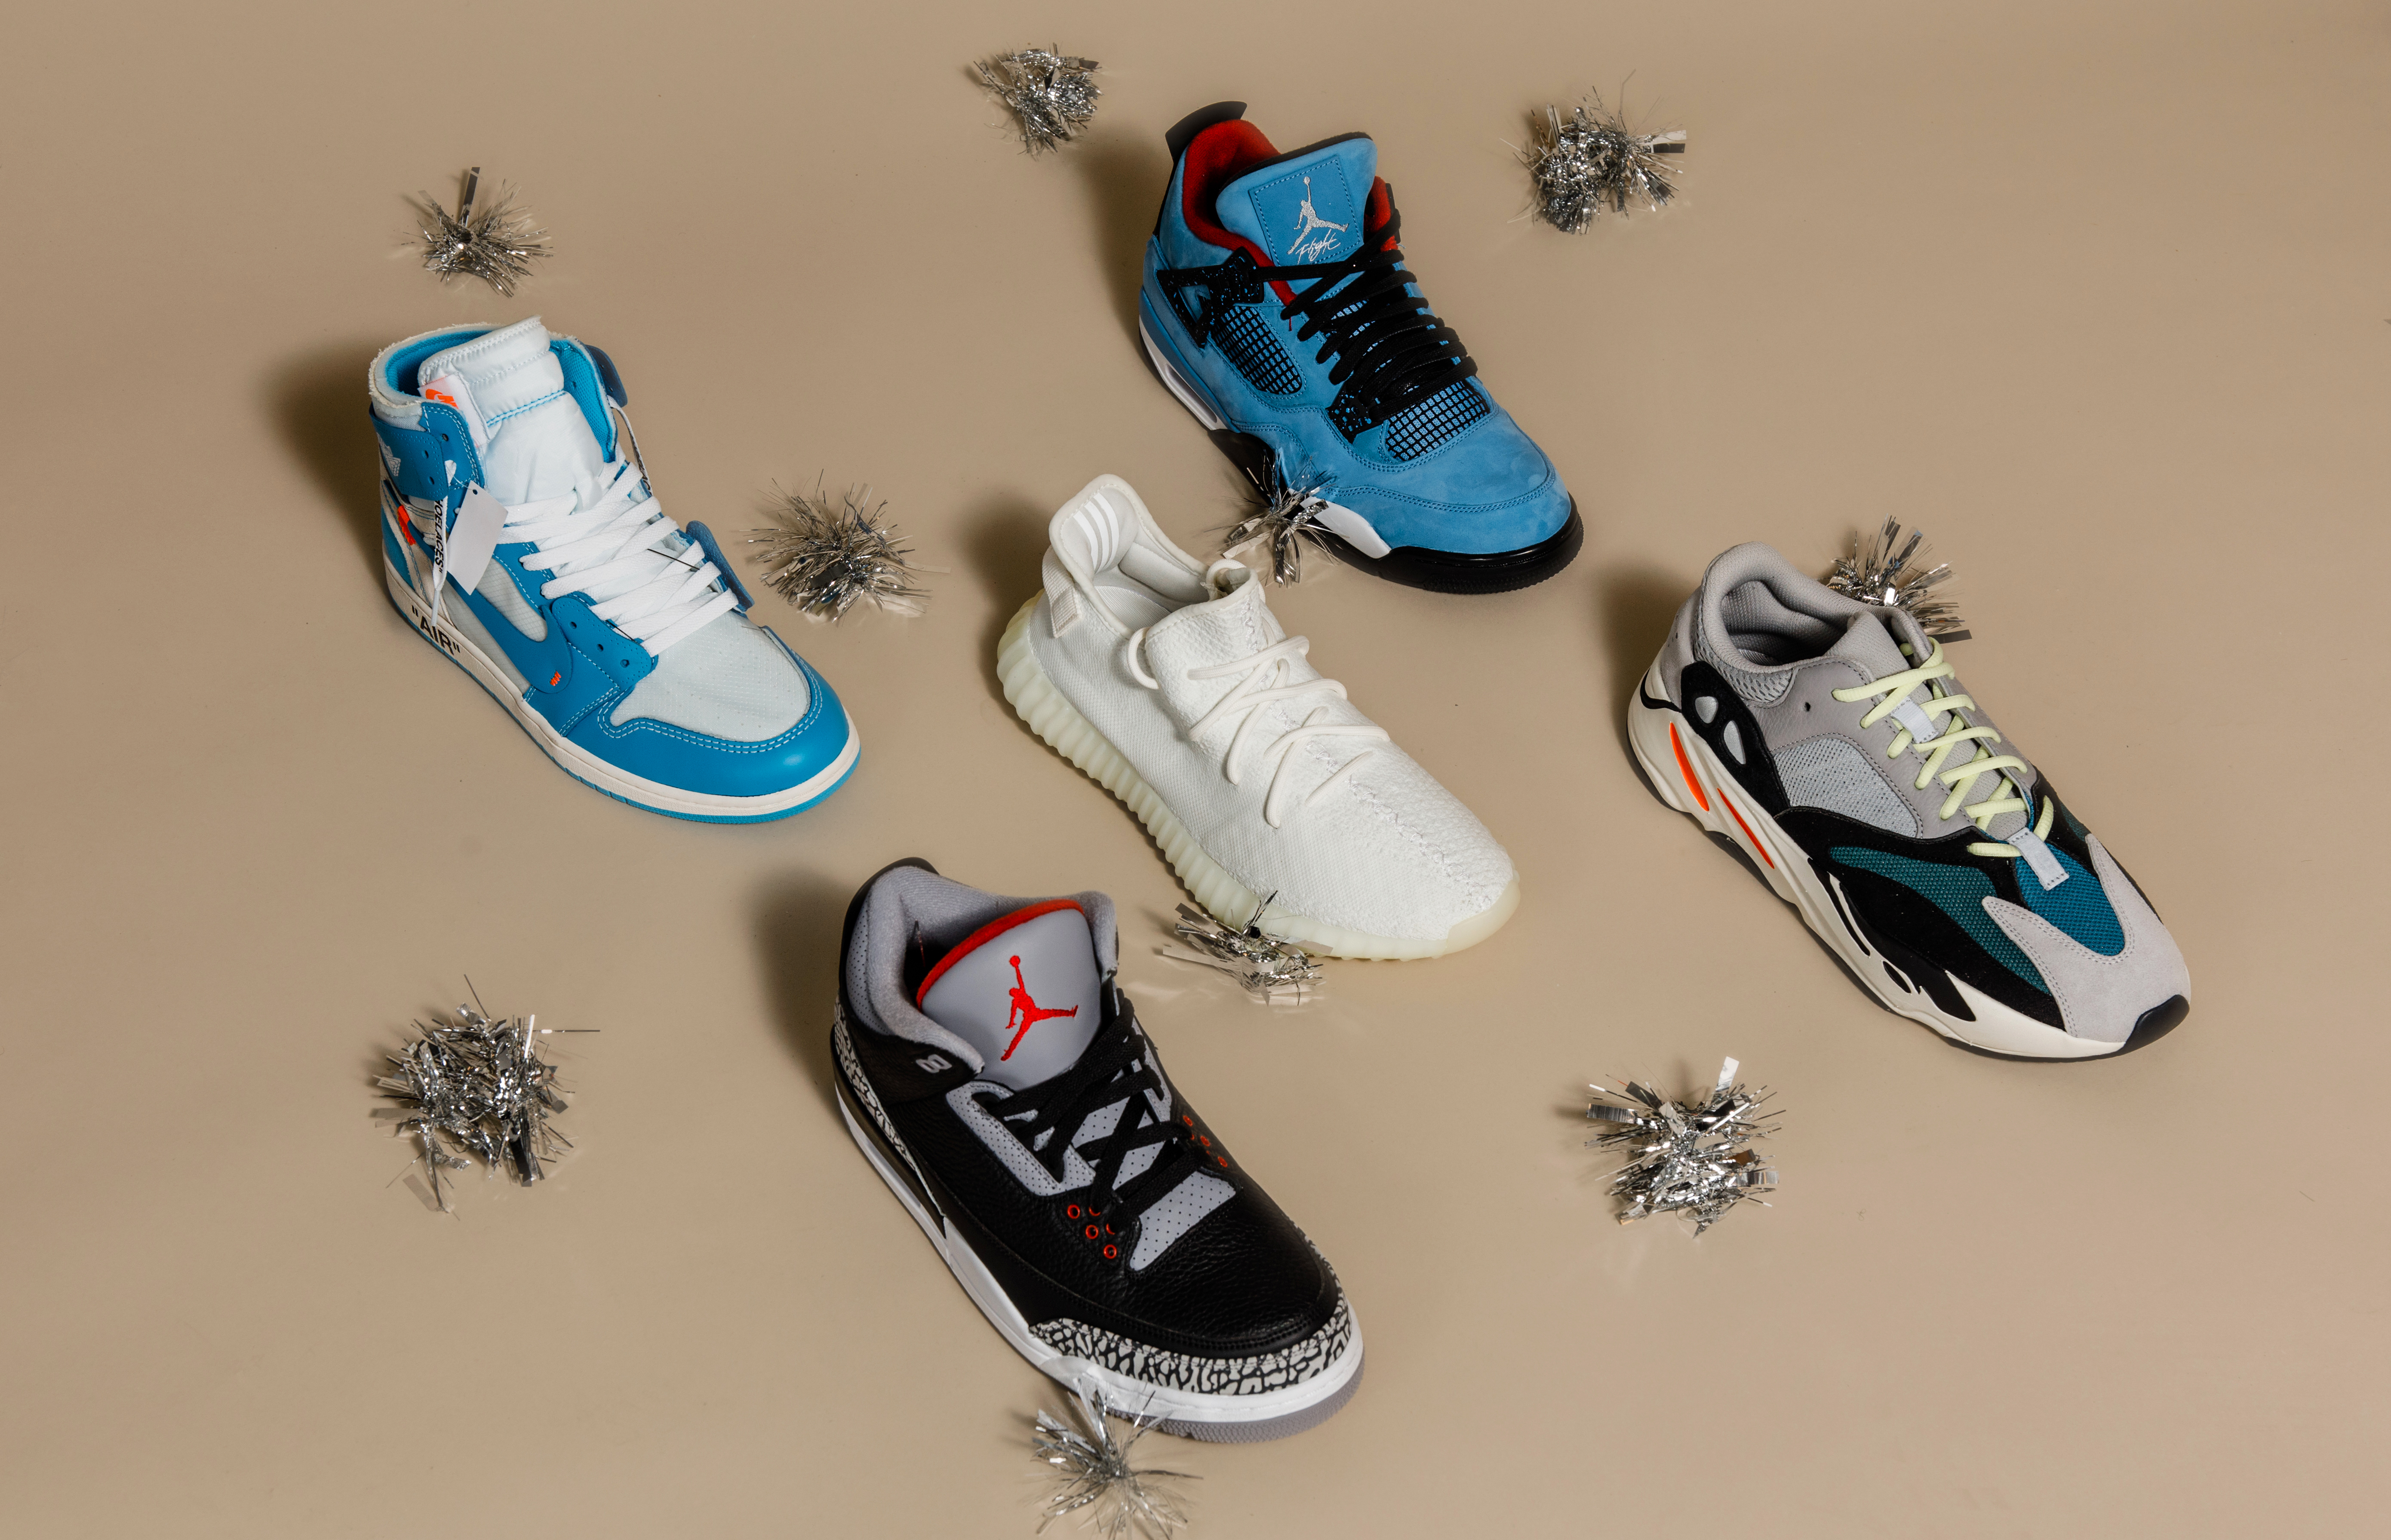 87ab17c905b Sneakers Holiday Gift Guide - StockX News